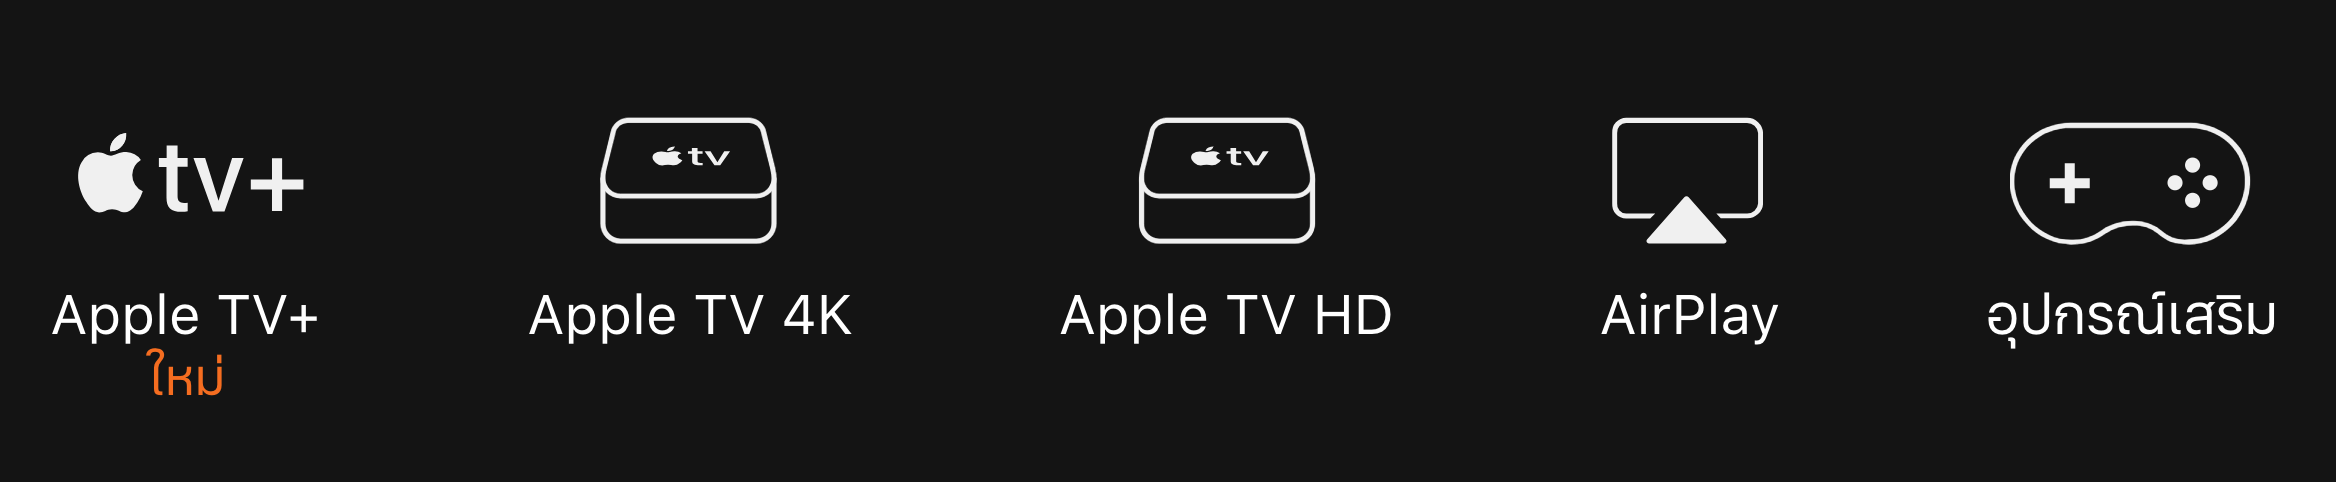 Apple Tv Gen 4 Rename To Apple Tv Hd Img 2